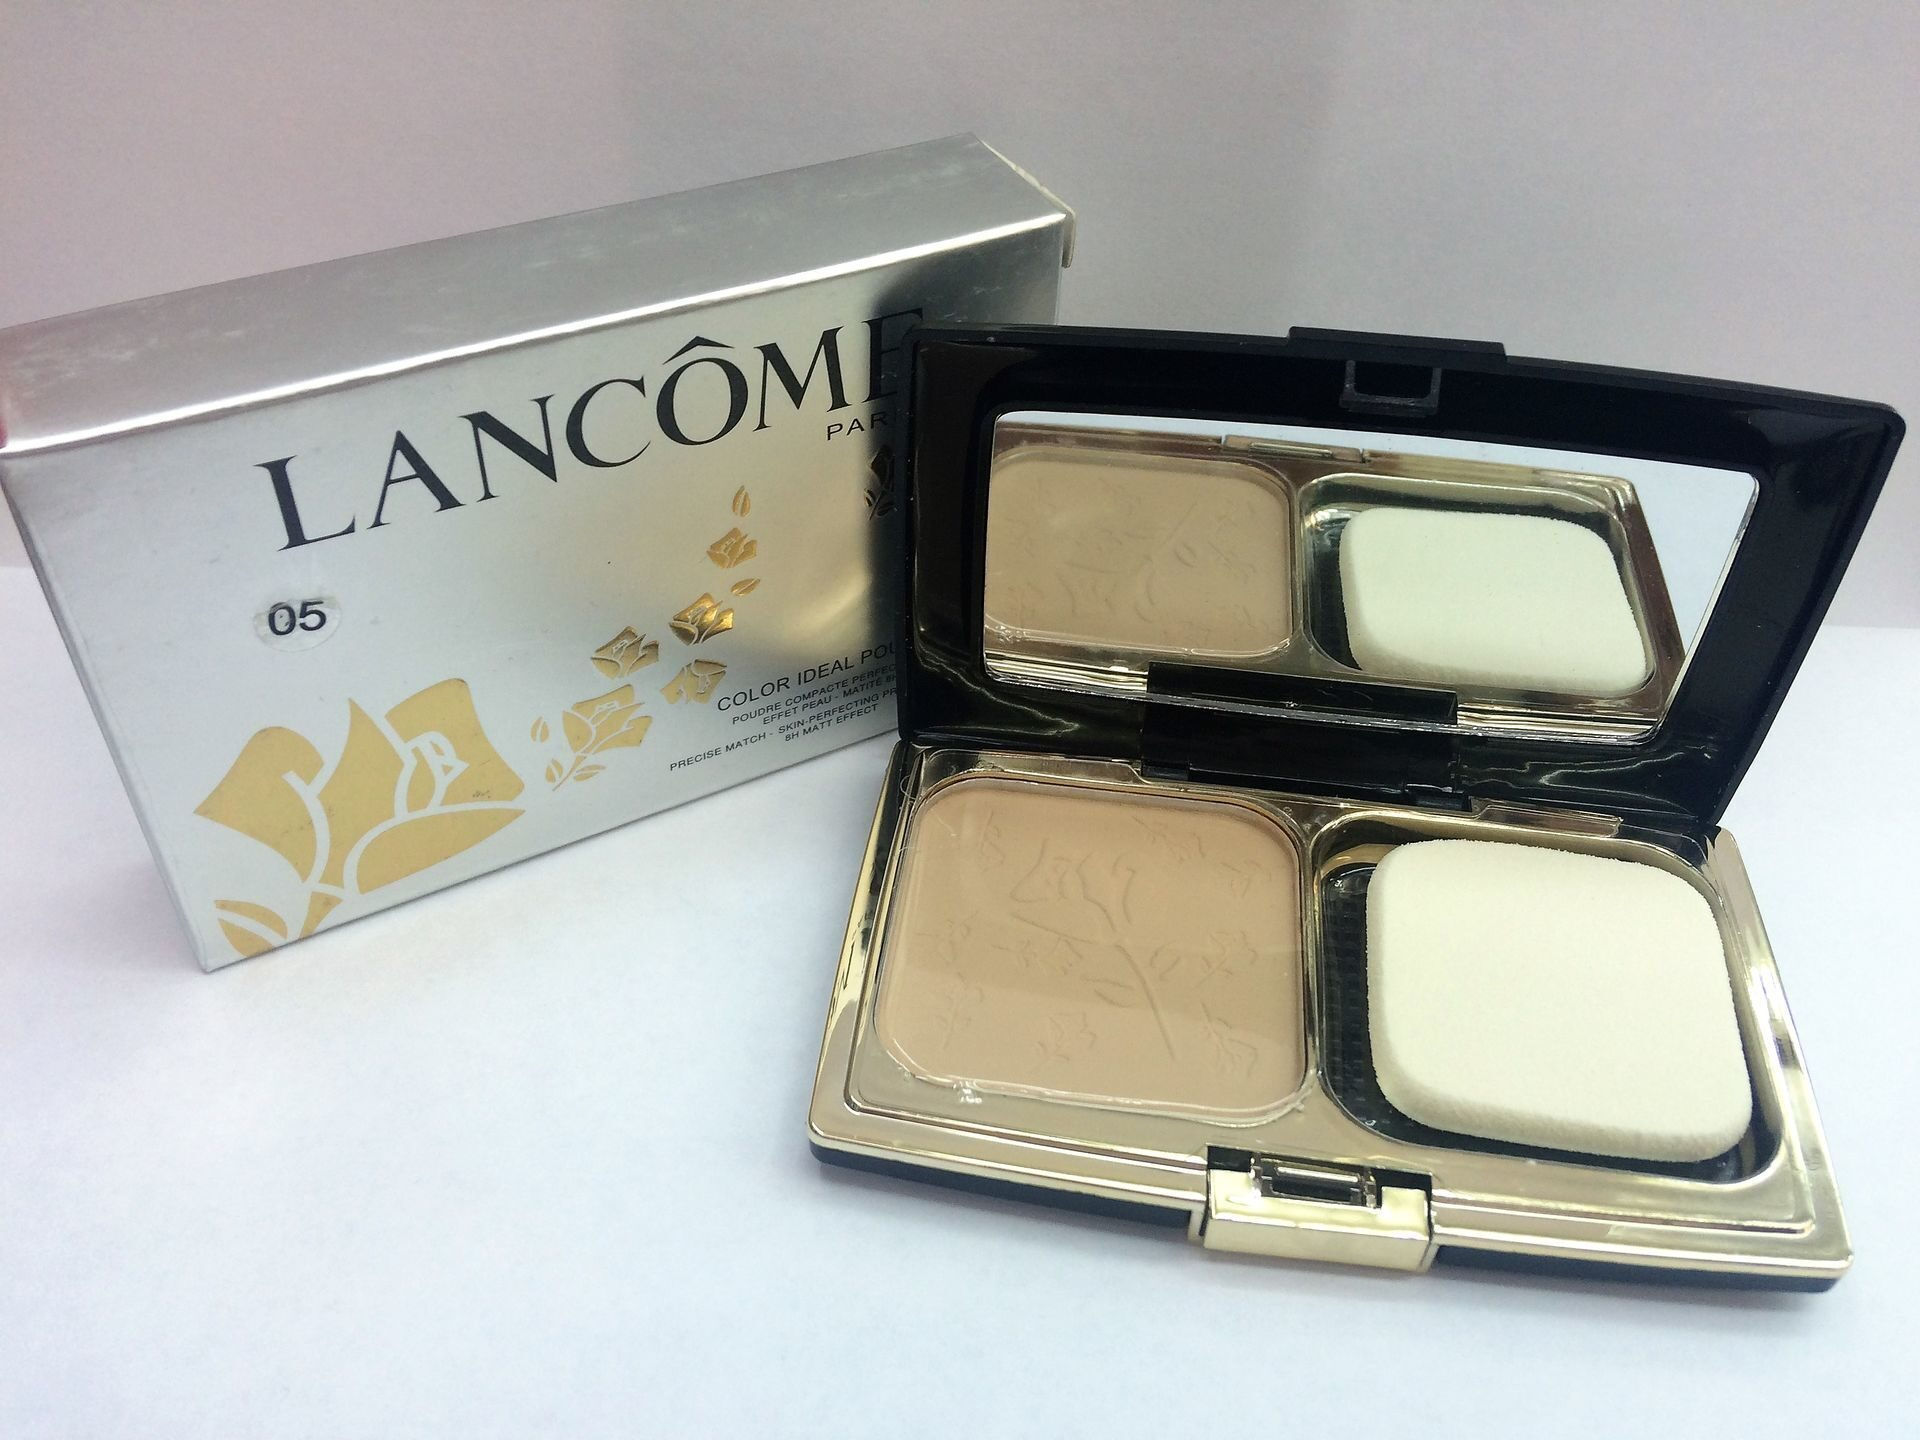 lancome color ideal poudre compact 12g номео 05